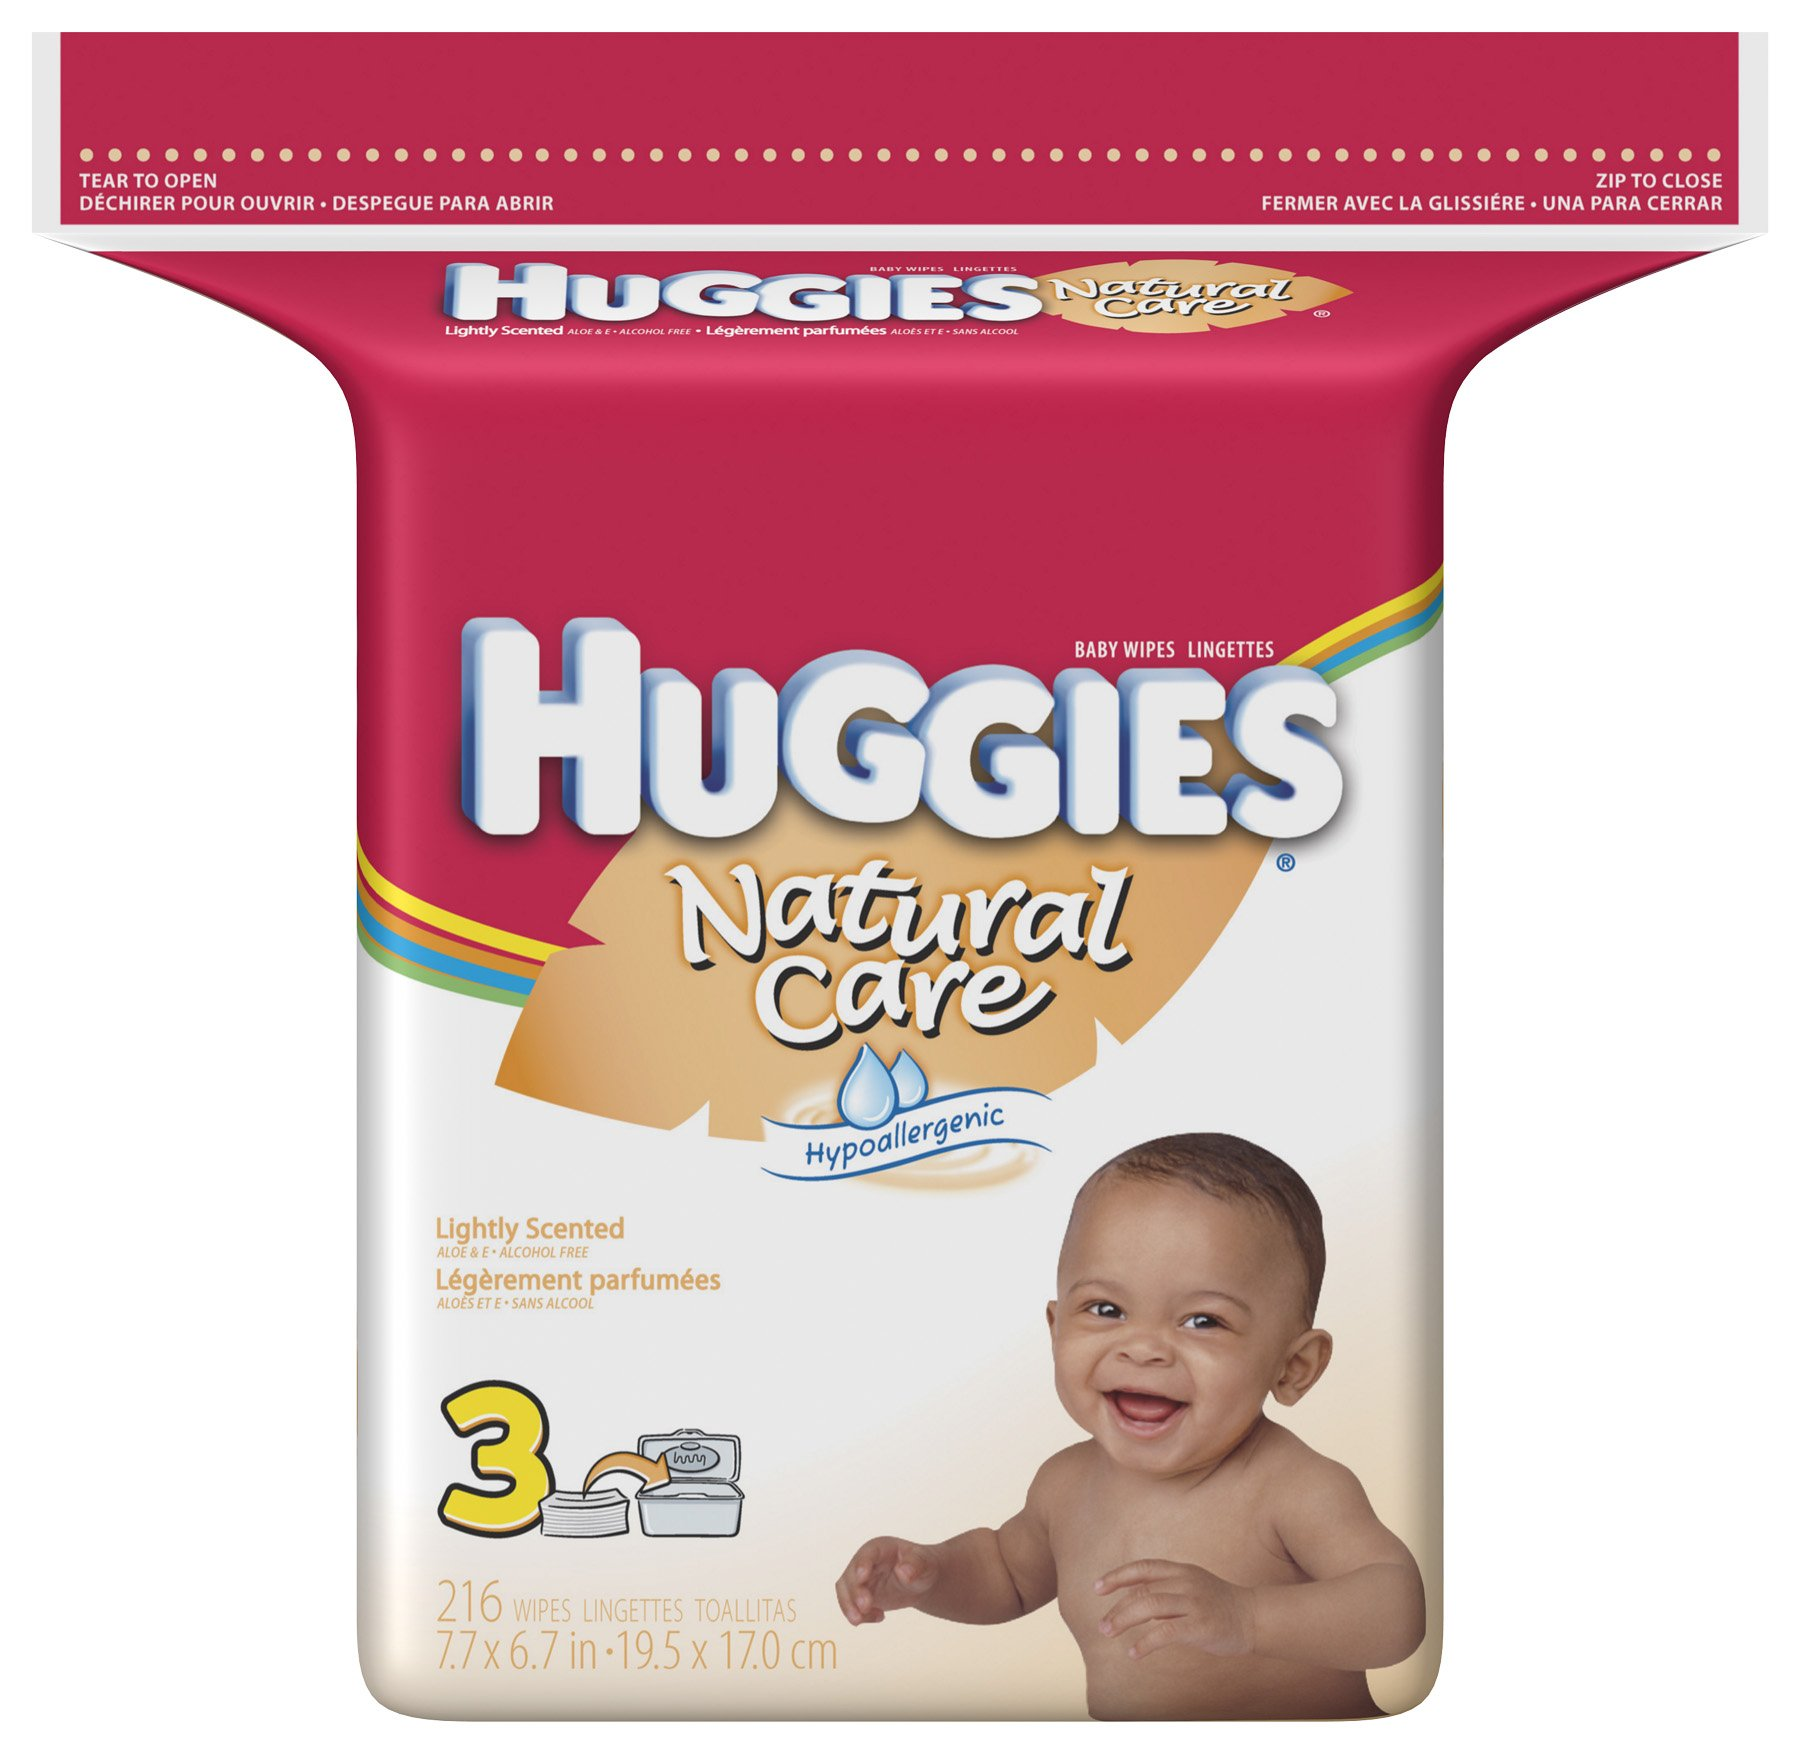 Huggies Natural Care Baby Wipes, Scented, Refill, 216-Count Pack (Pack of 3)=648 Wipes by HUGGIES (Image #1)